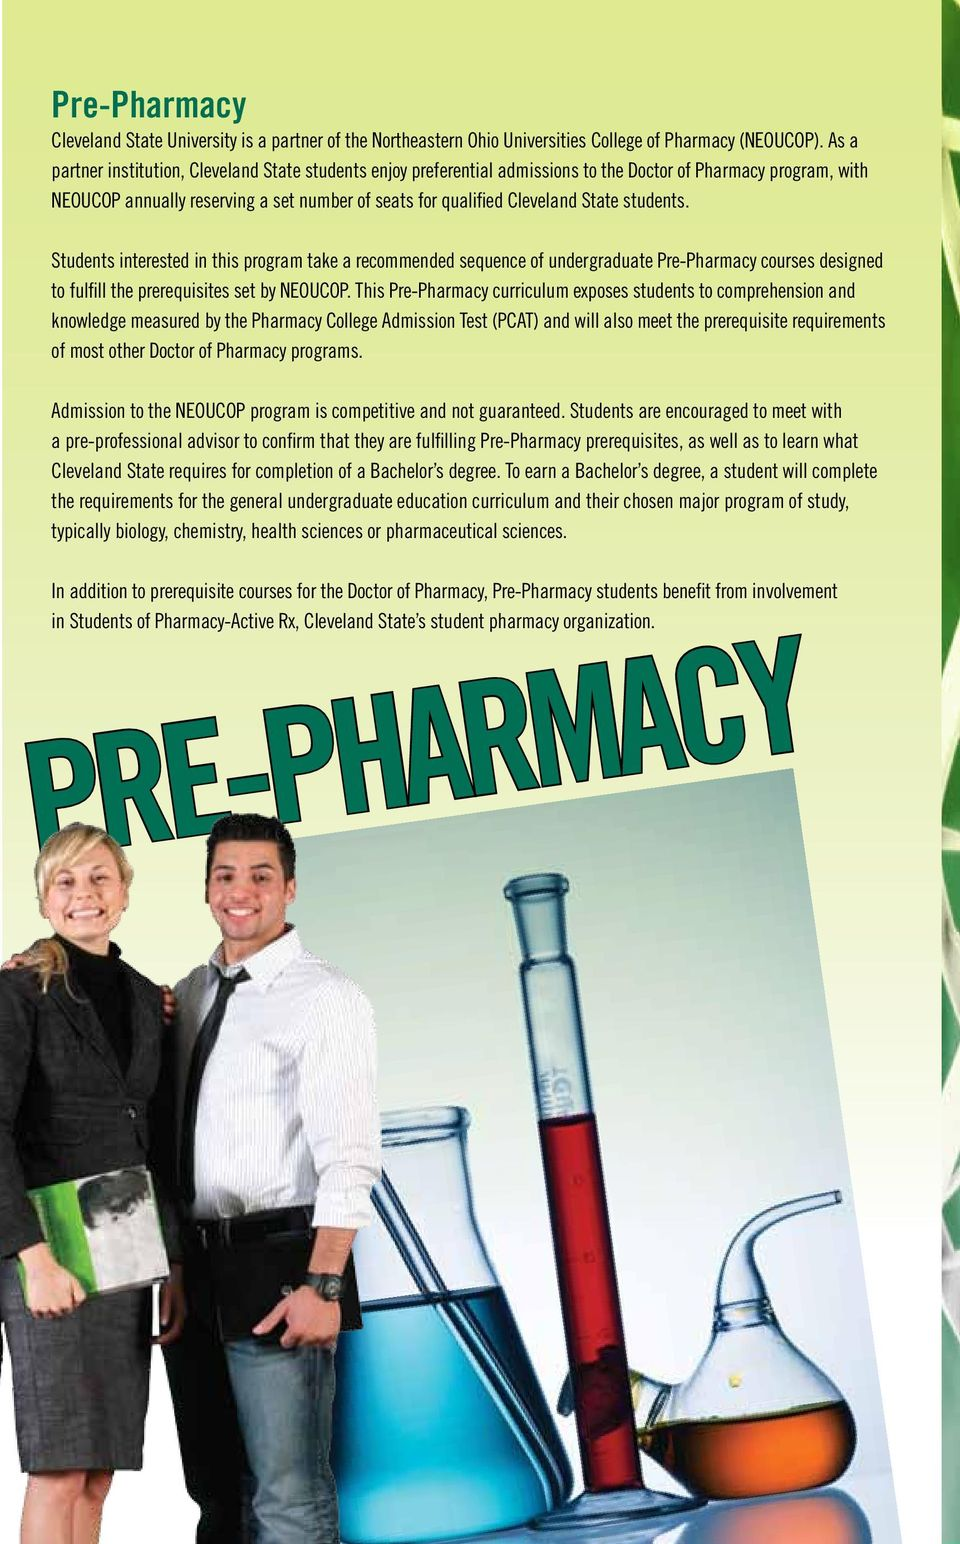 students. Students interested in this program take a recommended sequence of undergraduate Pre-Pharmacy courses designed to fulfill the prerequisites set by NEOUCOP.